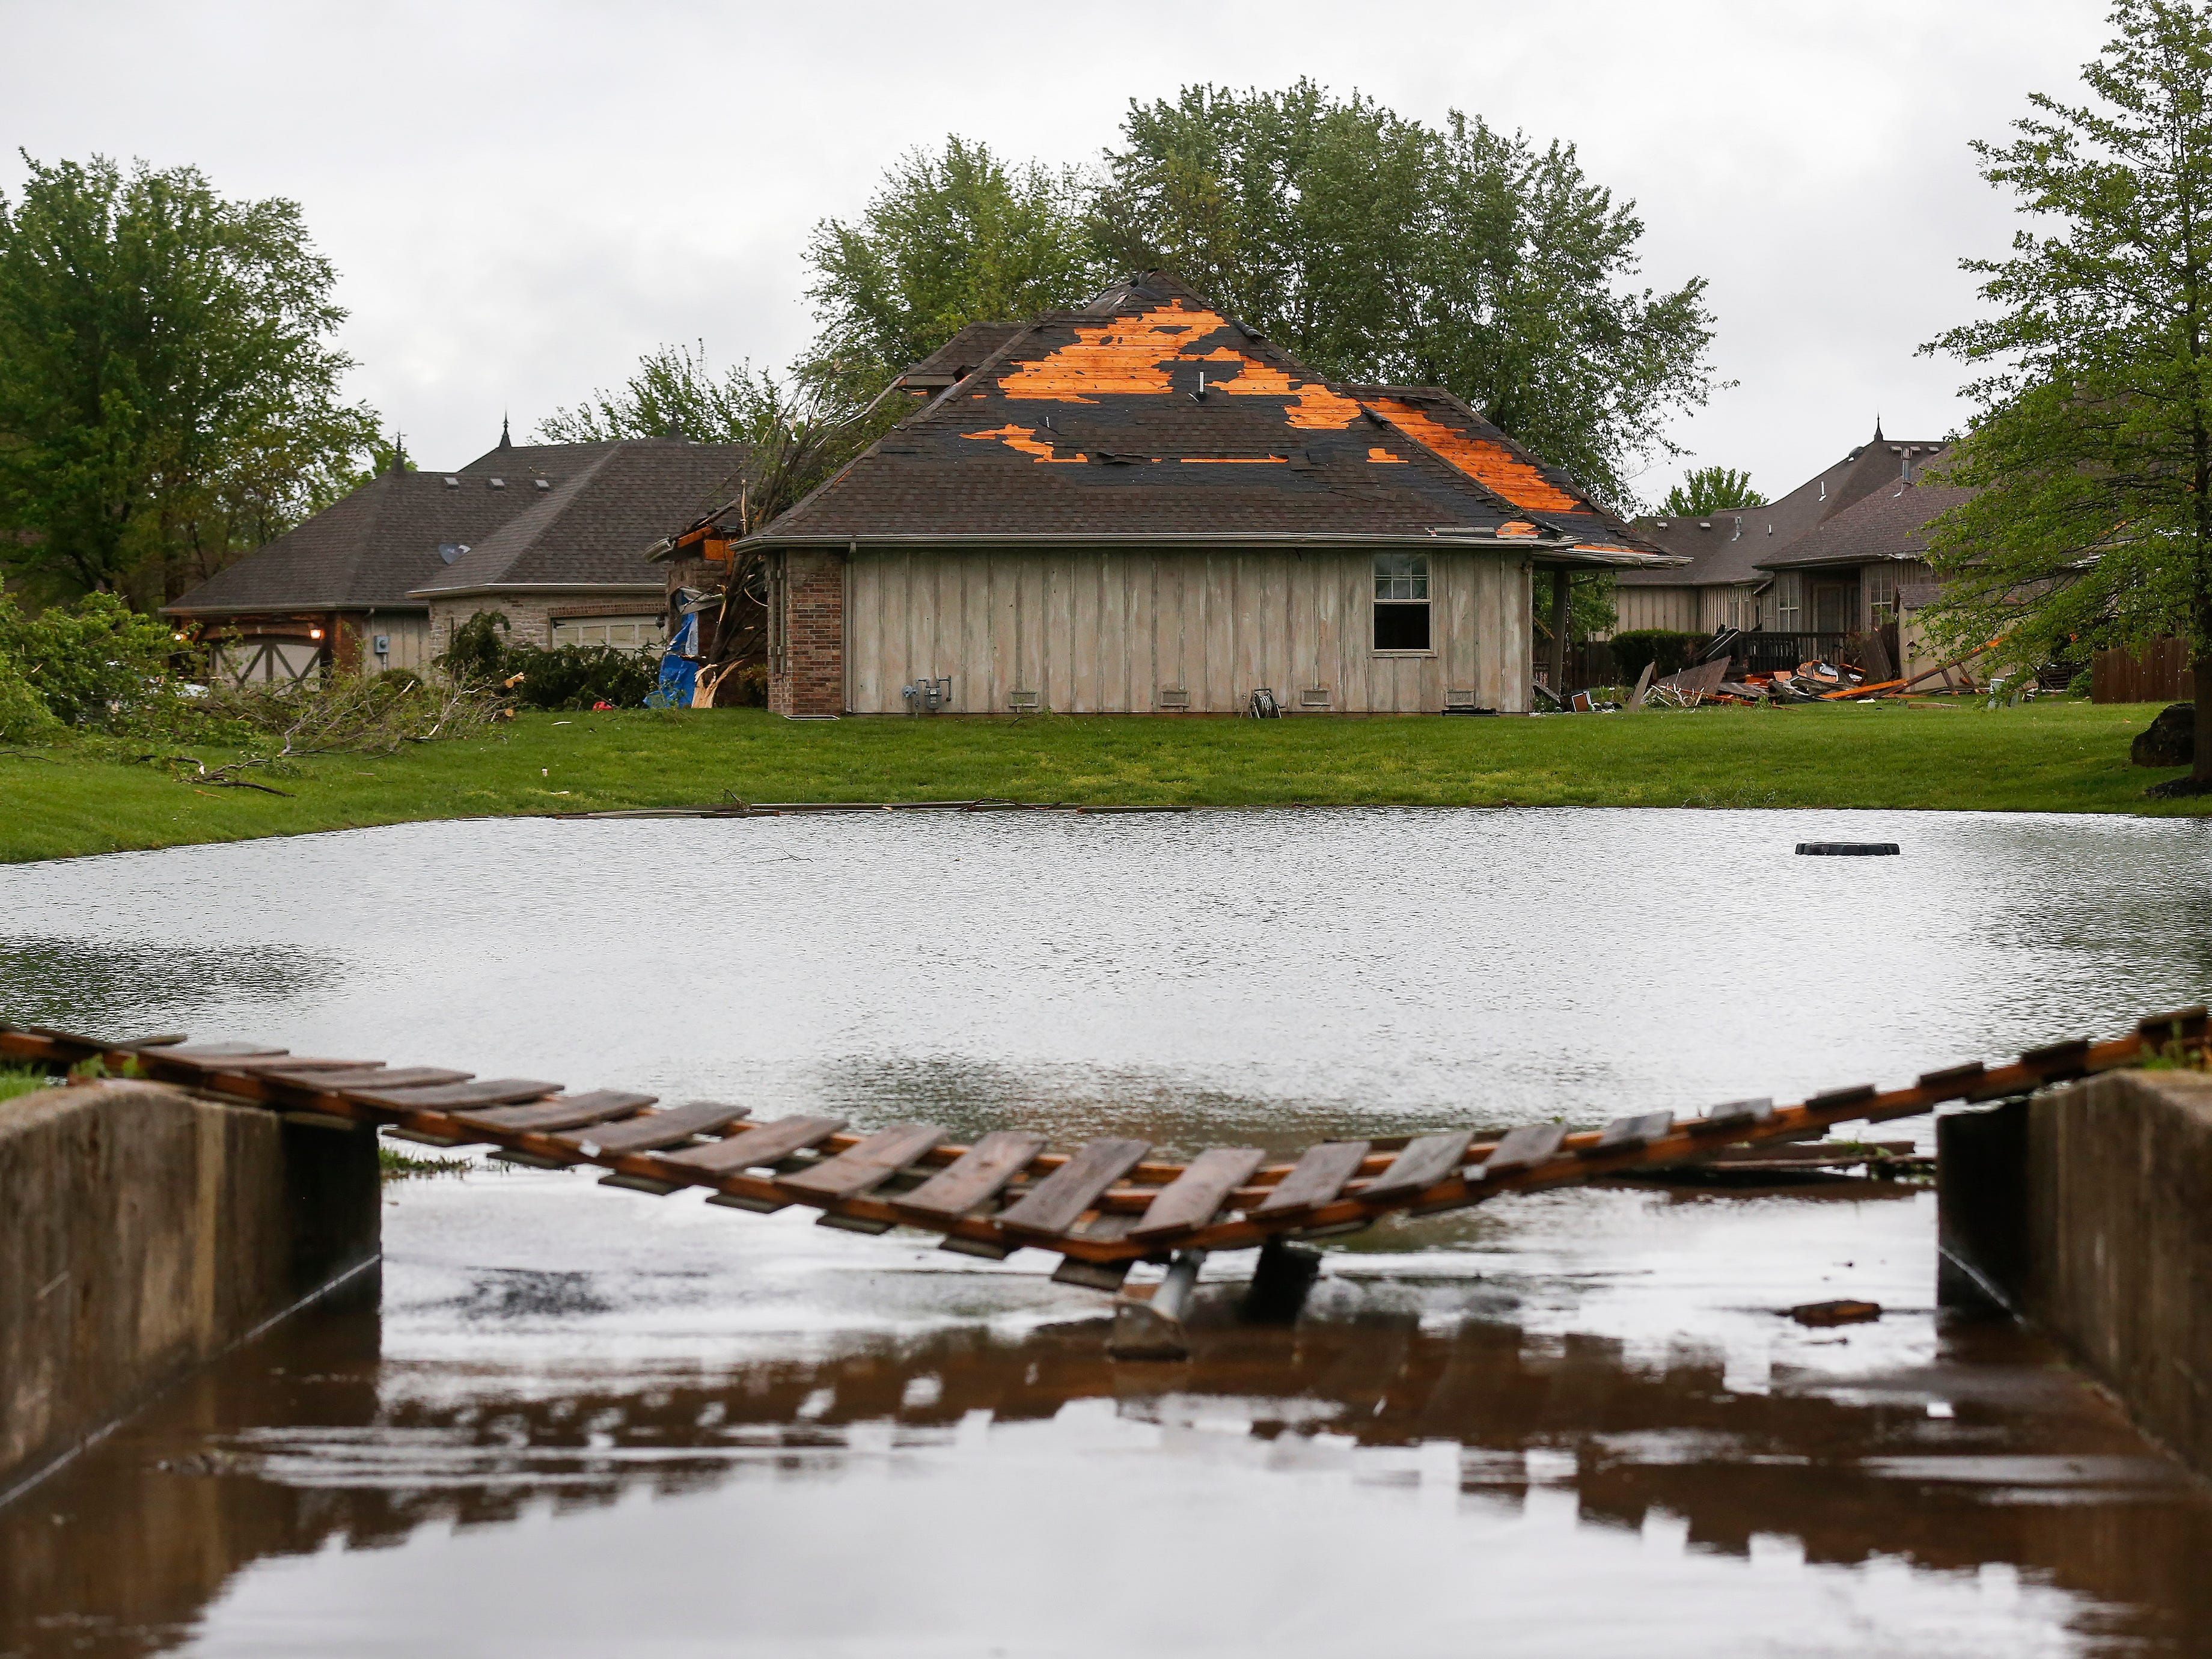 Homes and fences in the Waterford neighborhood were damaged by a likely tornado moved through the Ozark on Tuesday April 30, 2019.